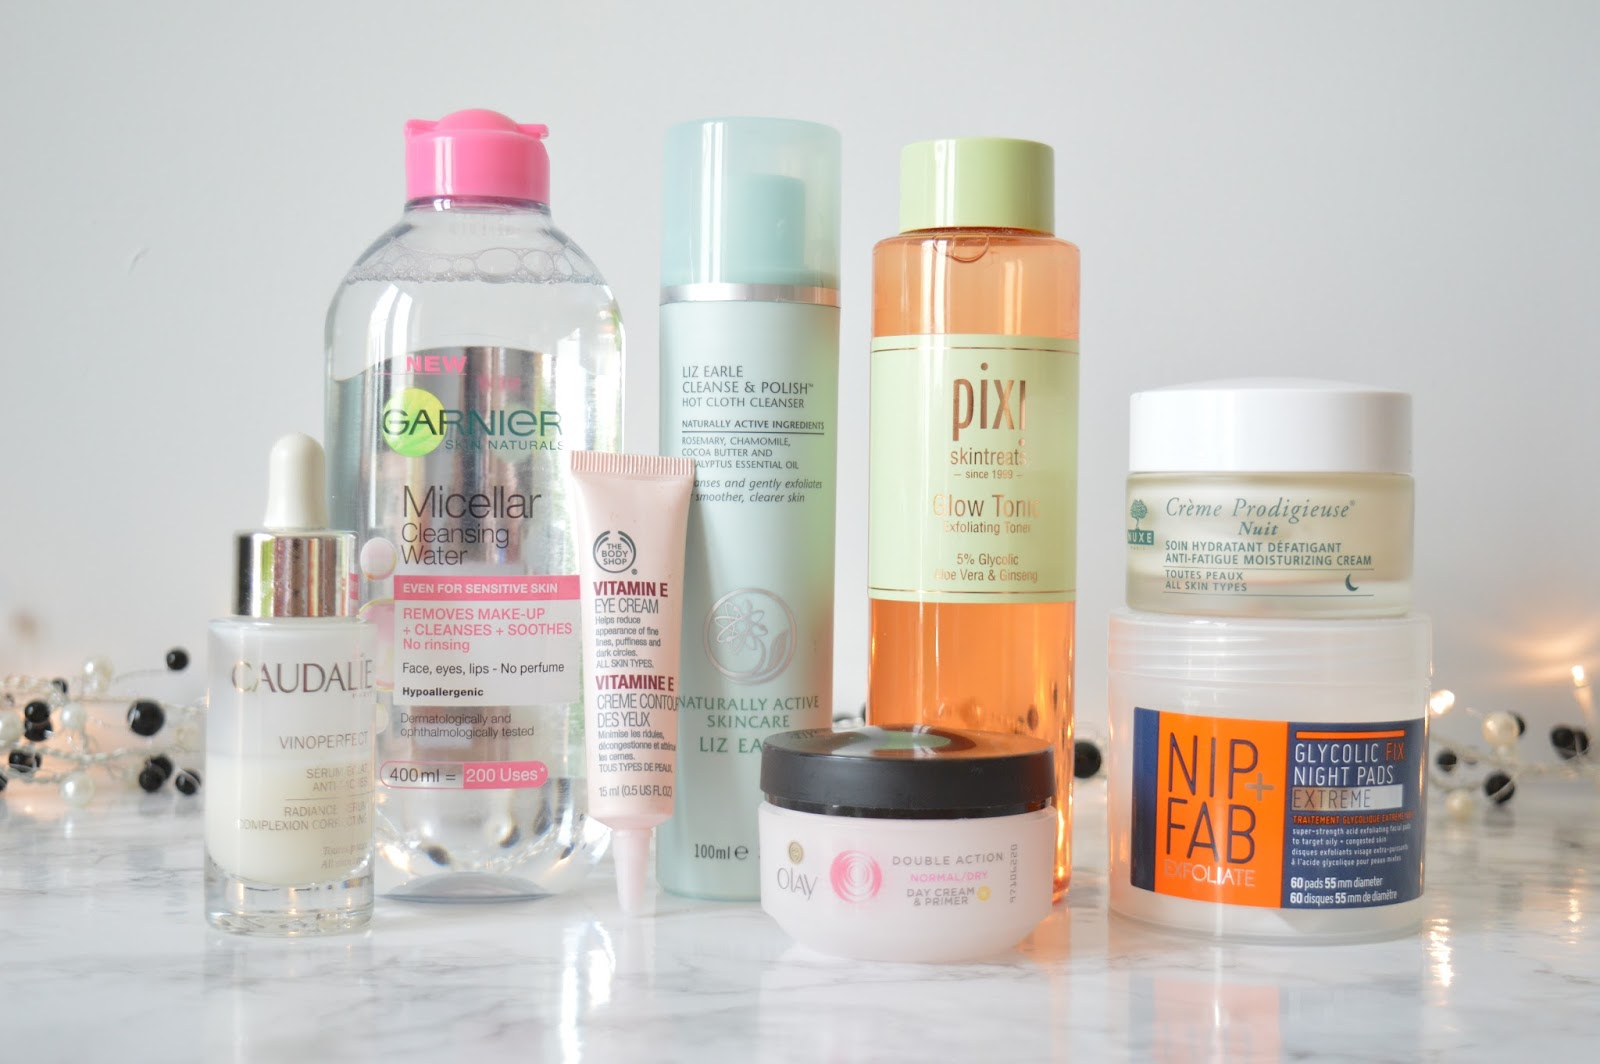 Skincare Routine featuring Caudalie, Garnie, Pixi, Nuxe and more